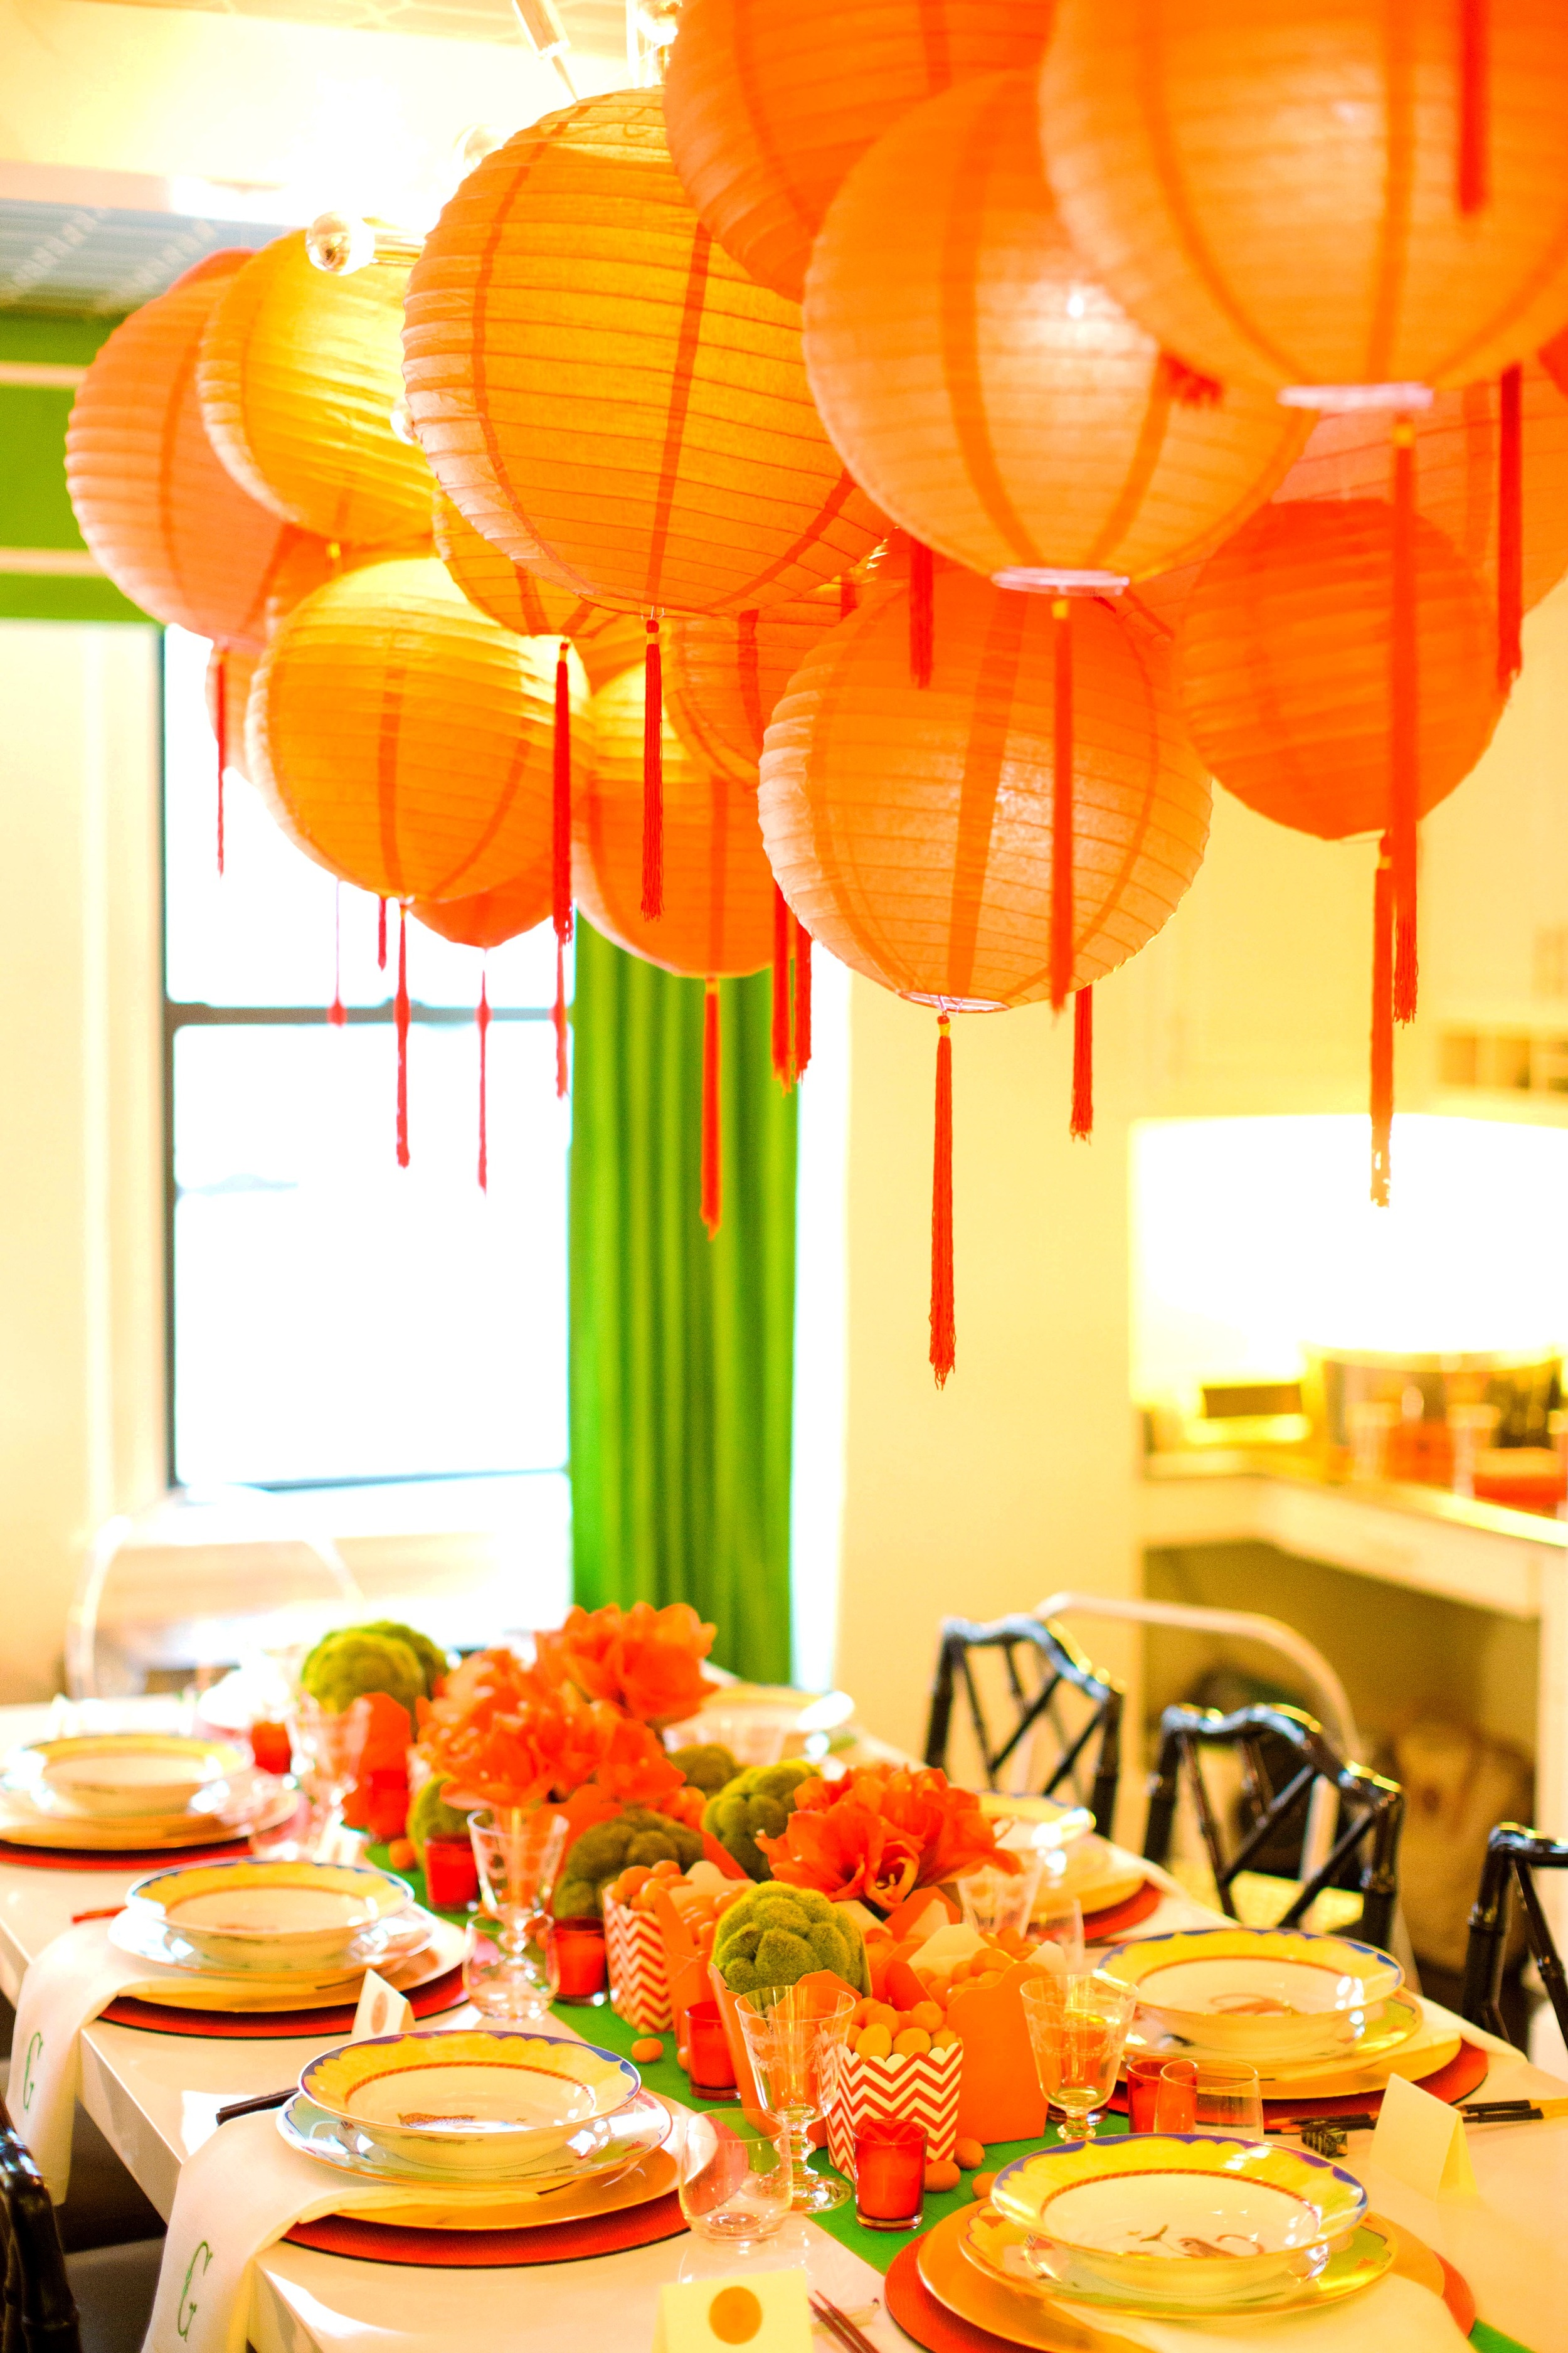 My tabletop decor was built off of my Lynn Chase Tiger Raj china pattern - all shades of green and orange.